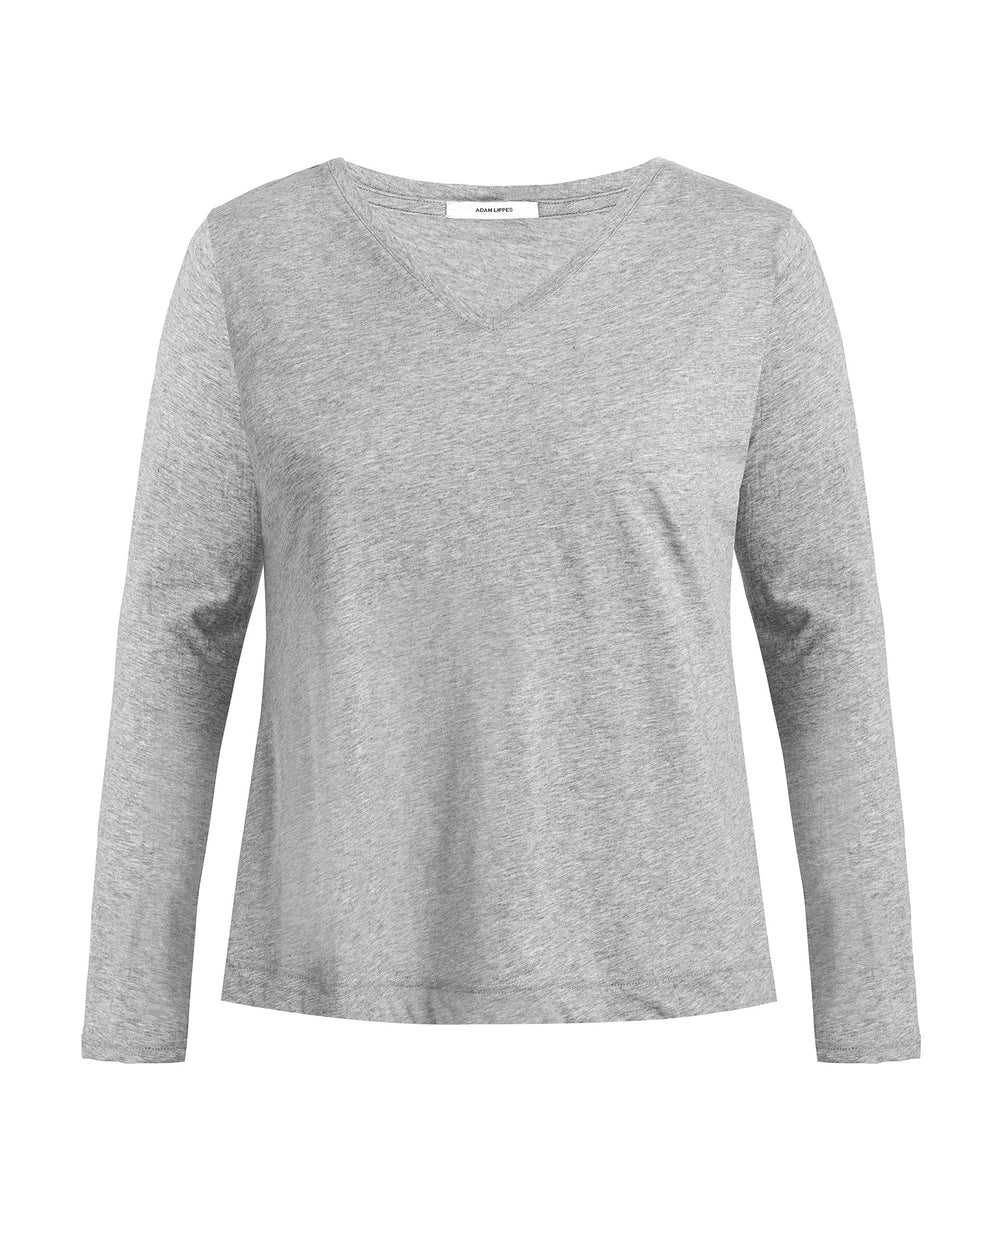 Long Sleeve V-Neck Pima Cotton T Shirt